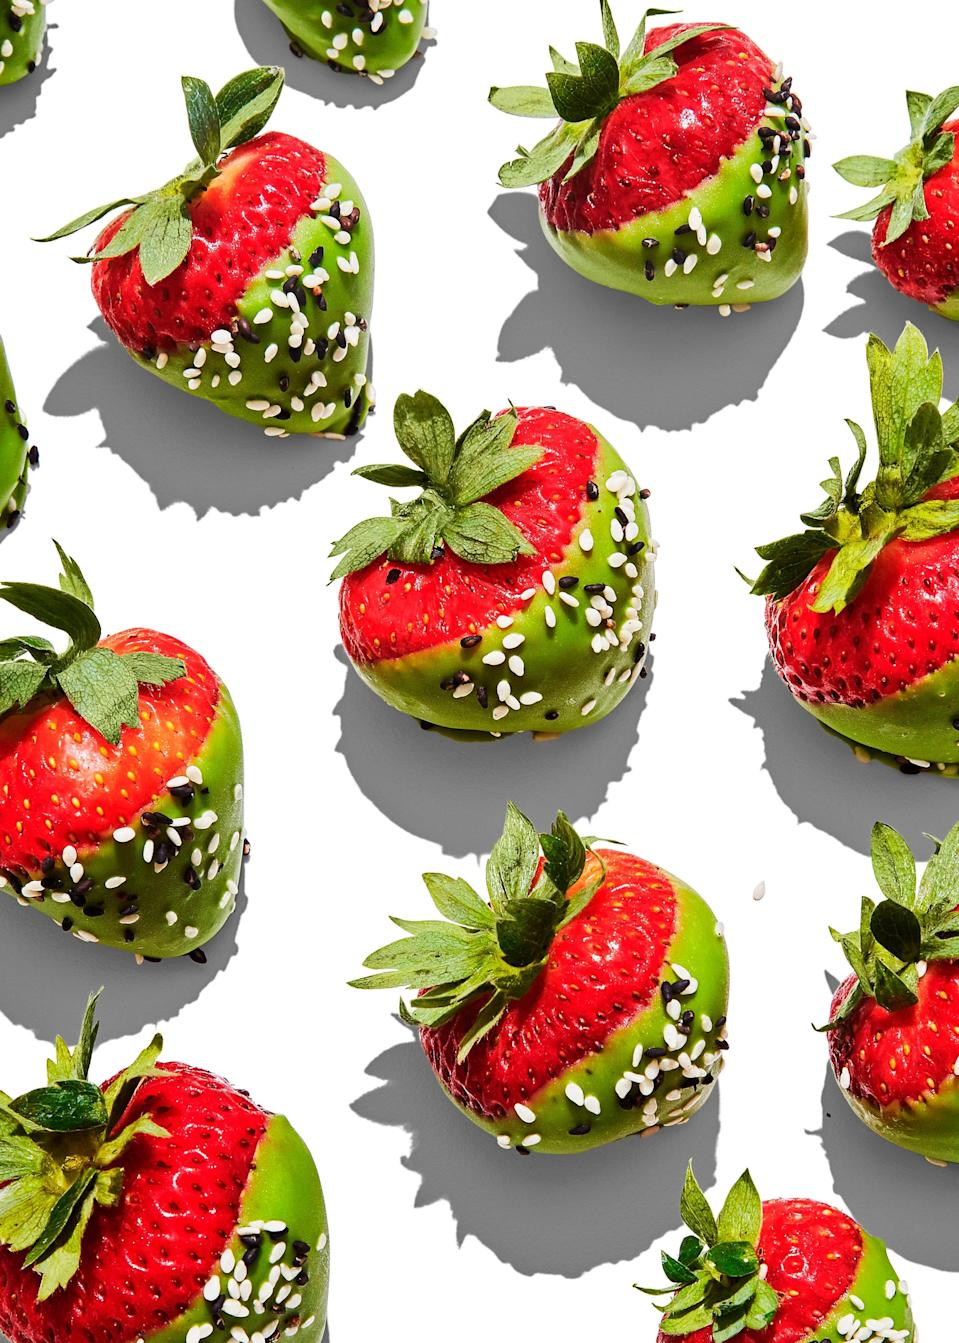 "Matcha and sesame seeds take these strawberries to a place chocolate-dipped berries only dream of. You won't stop at just one. <a href=""https://www.bonappetit.com/recipe/matcha-dipped-strawberries?mbid=synd_yahoo_rss"" rel=""nofollow noopener"" target=""_blank"" data-ylk=""slk:See recipe."" class=""link rapid-noclick-resp"">See recipe.</a>"